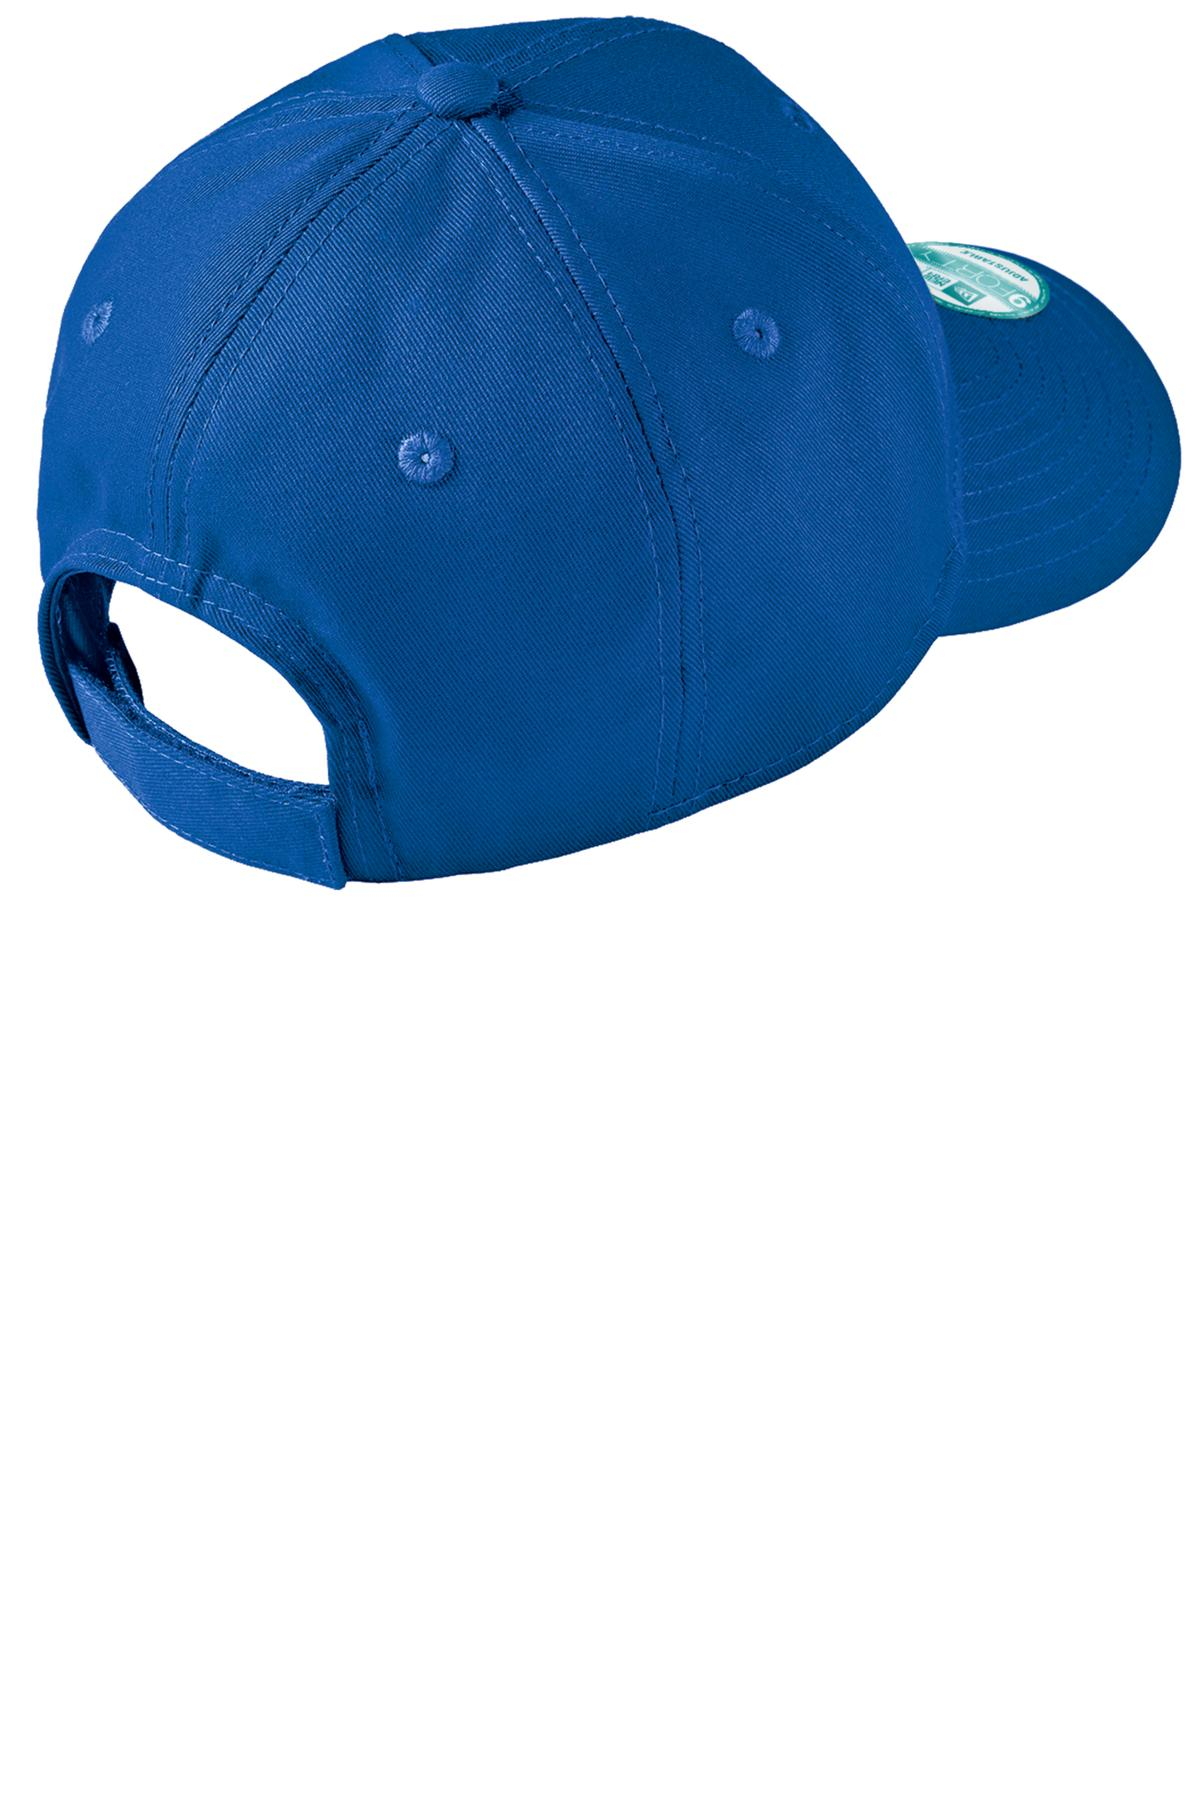 New Era - Adjustable Structured Cap - RCG3230